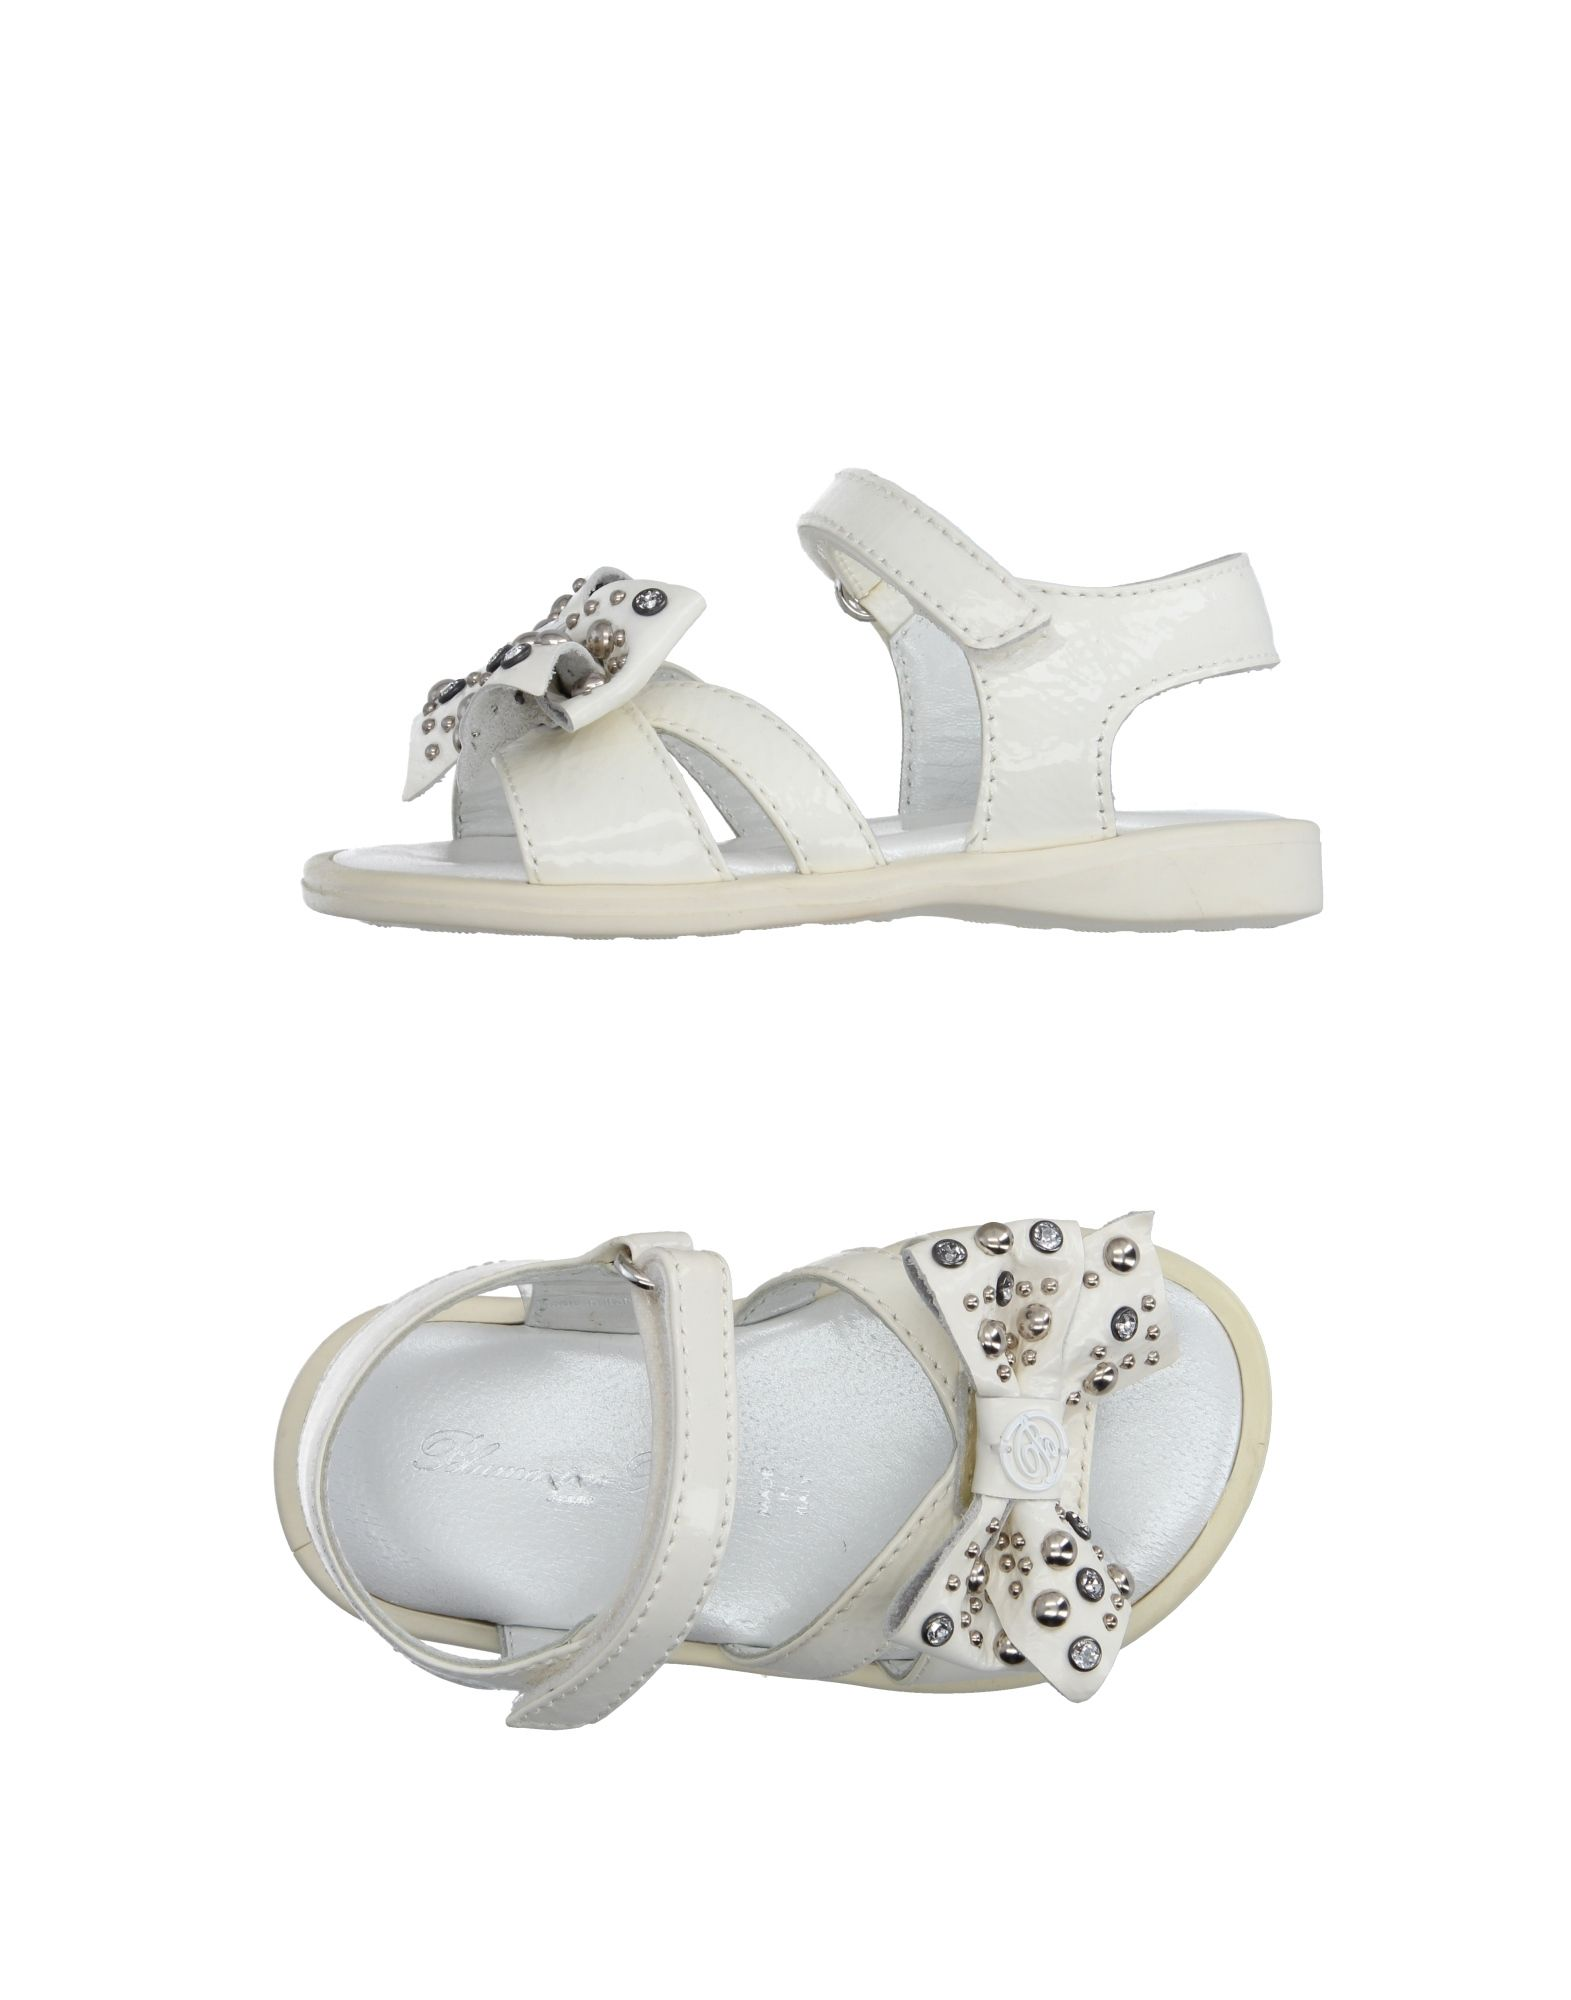 MISS BLUMARINE JEANS Sandals